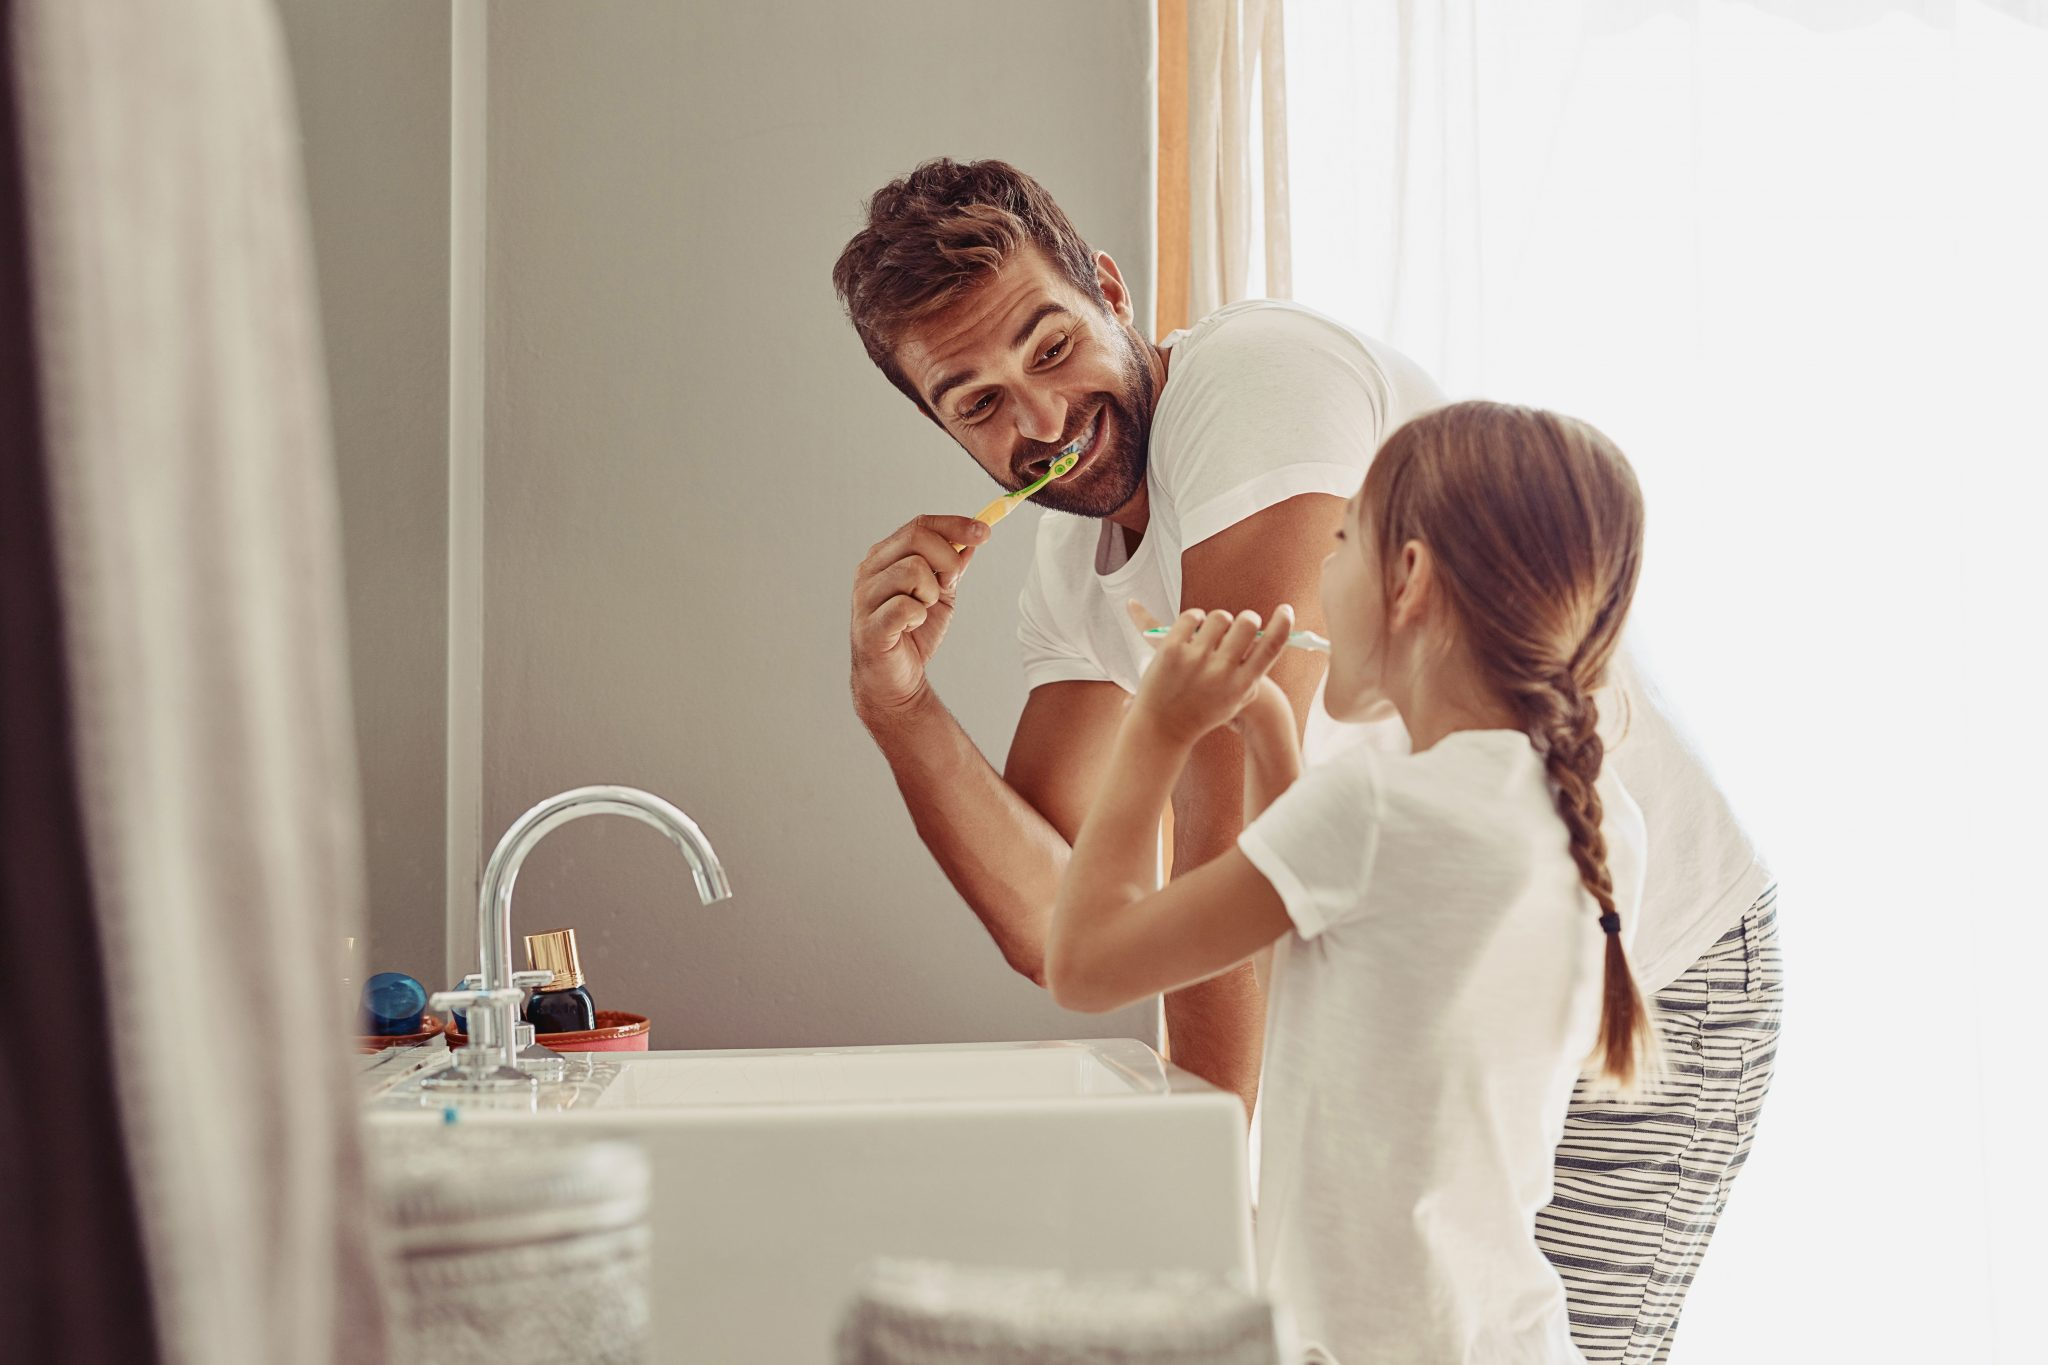 Dad and daughter brushing teeth